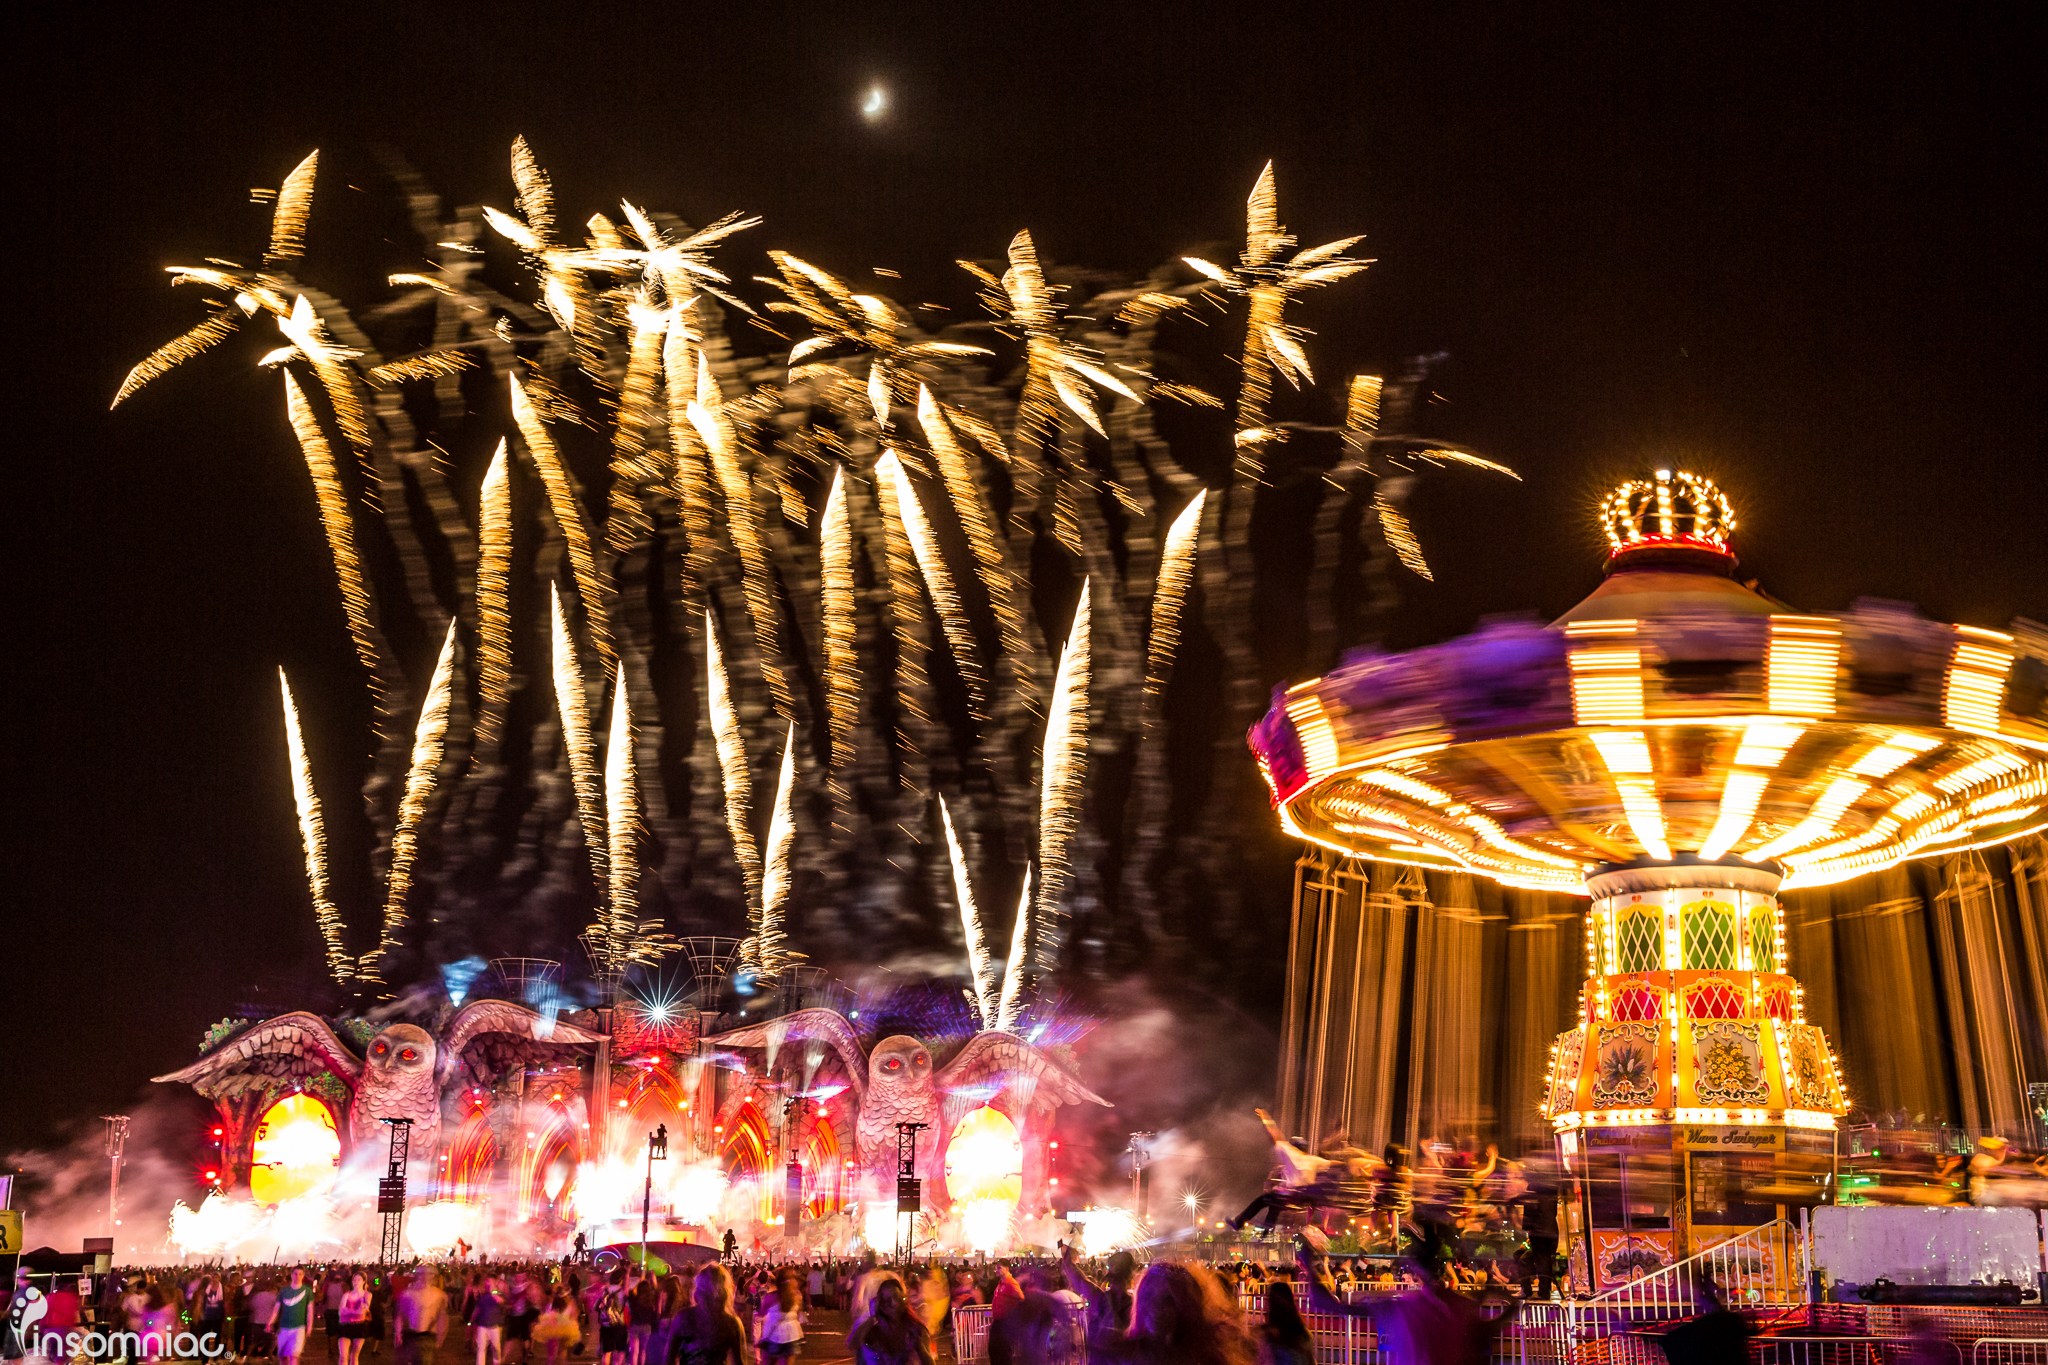 EDCNY_2015_iWally_aLIVECoverage-21.jpg